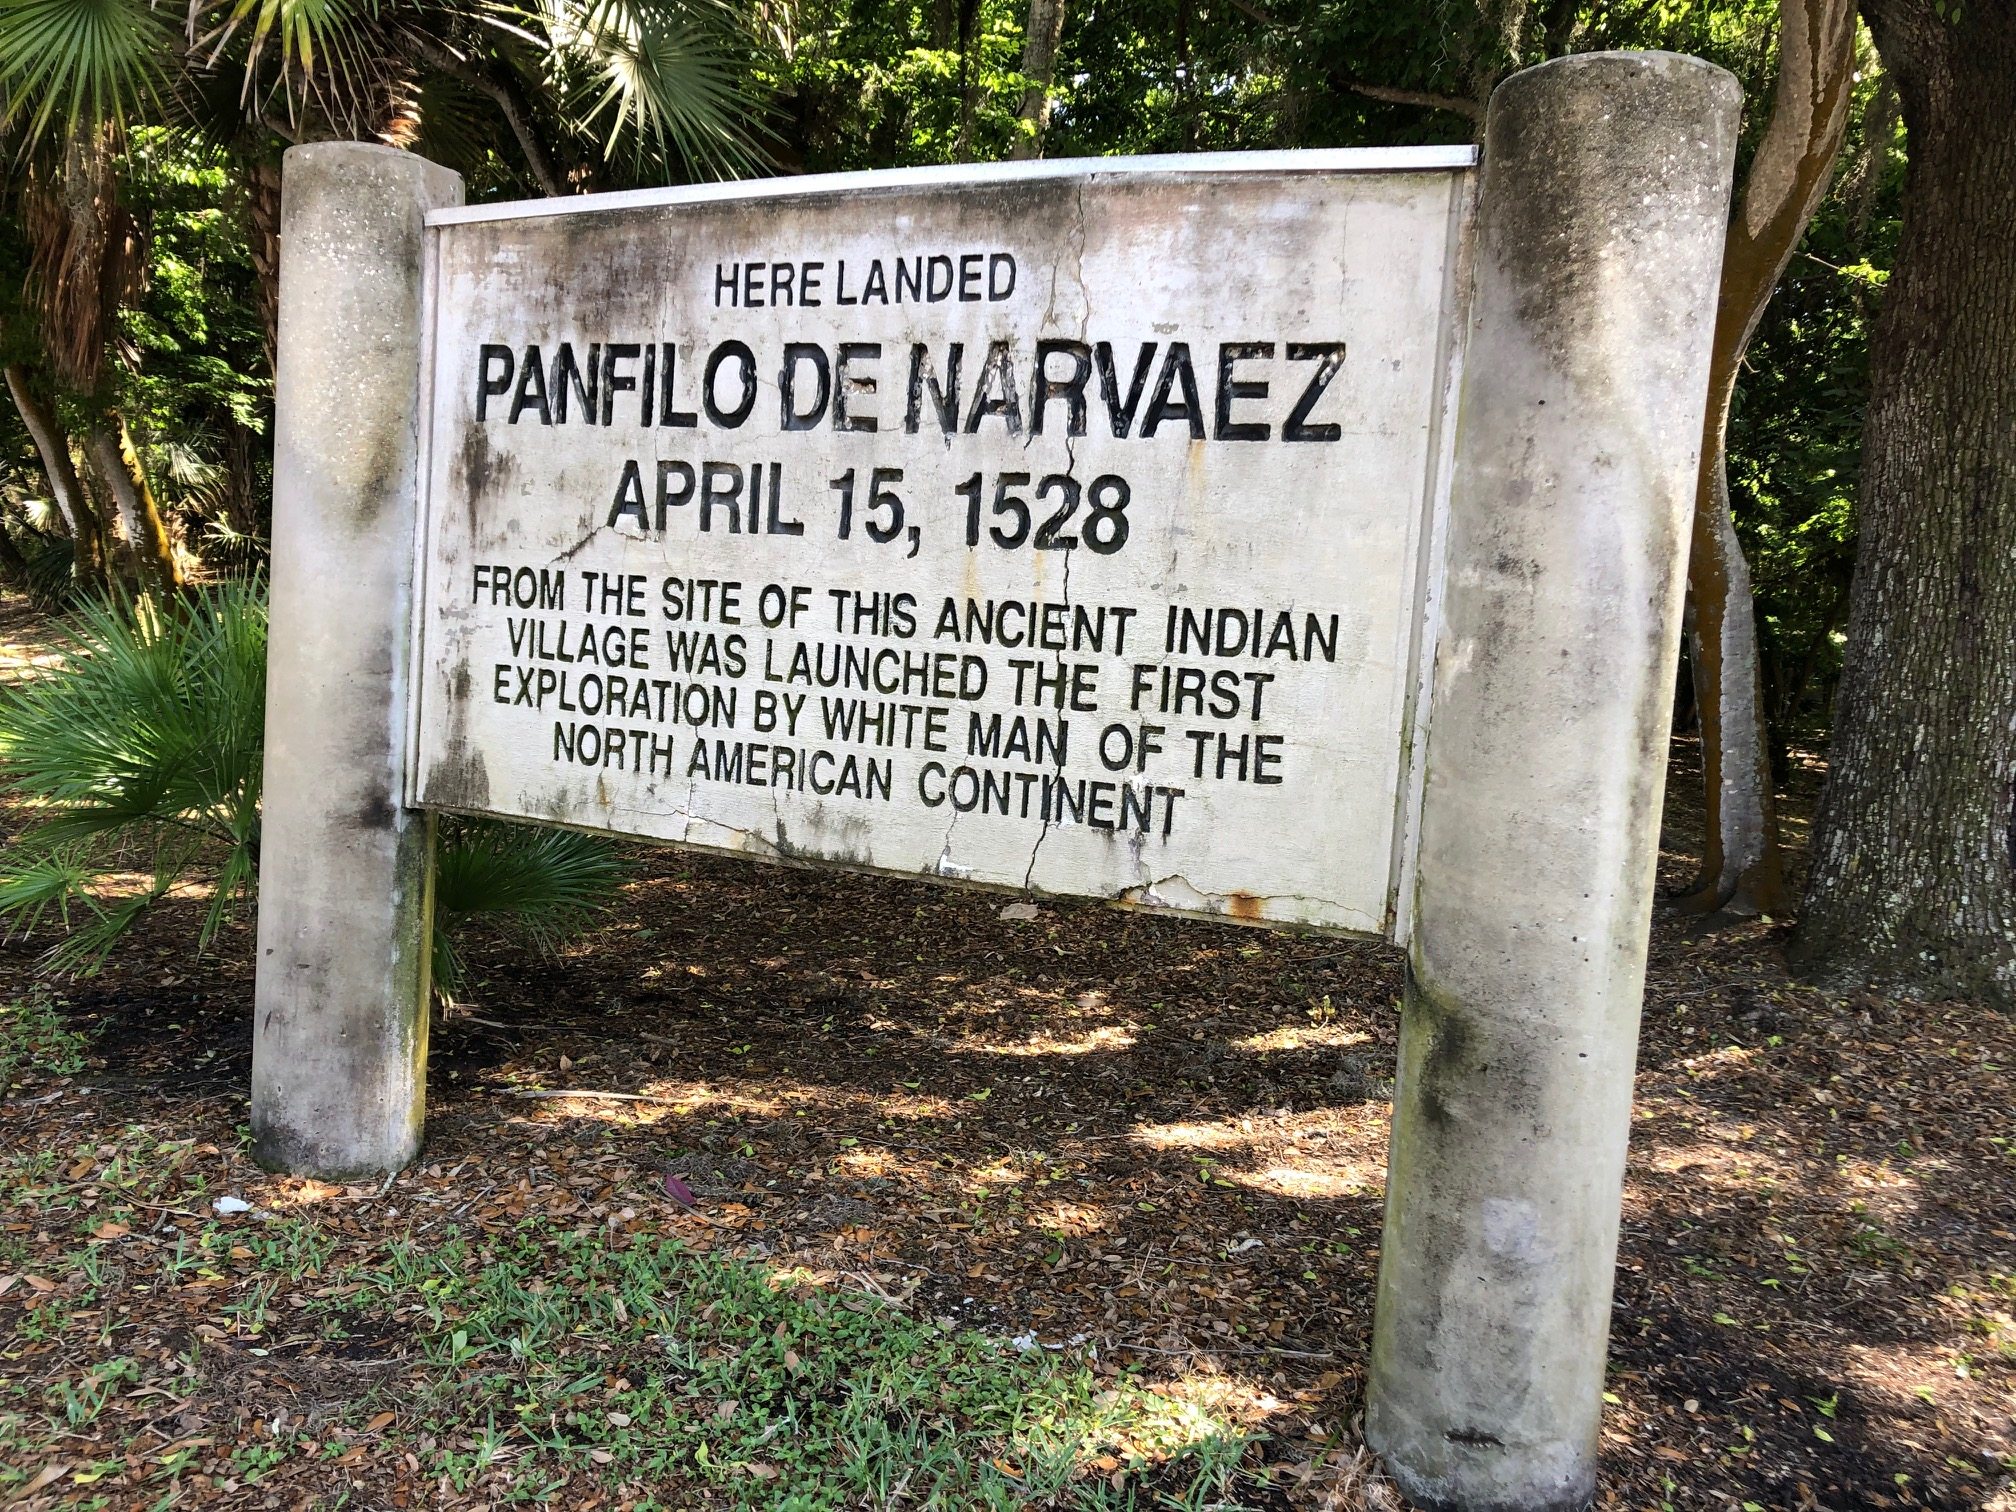 """A historic marker sign that reads """"Here landed Panfilo De Narvaez"""" April 15, 1528 From the site of this ancient Indian village was launched the first exploration by white men of the North American continent."""""""